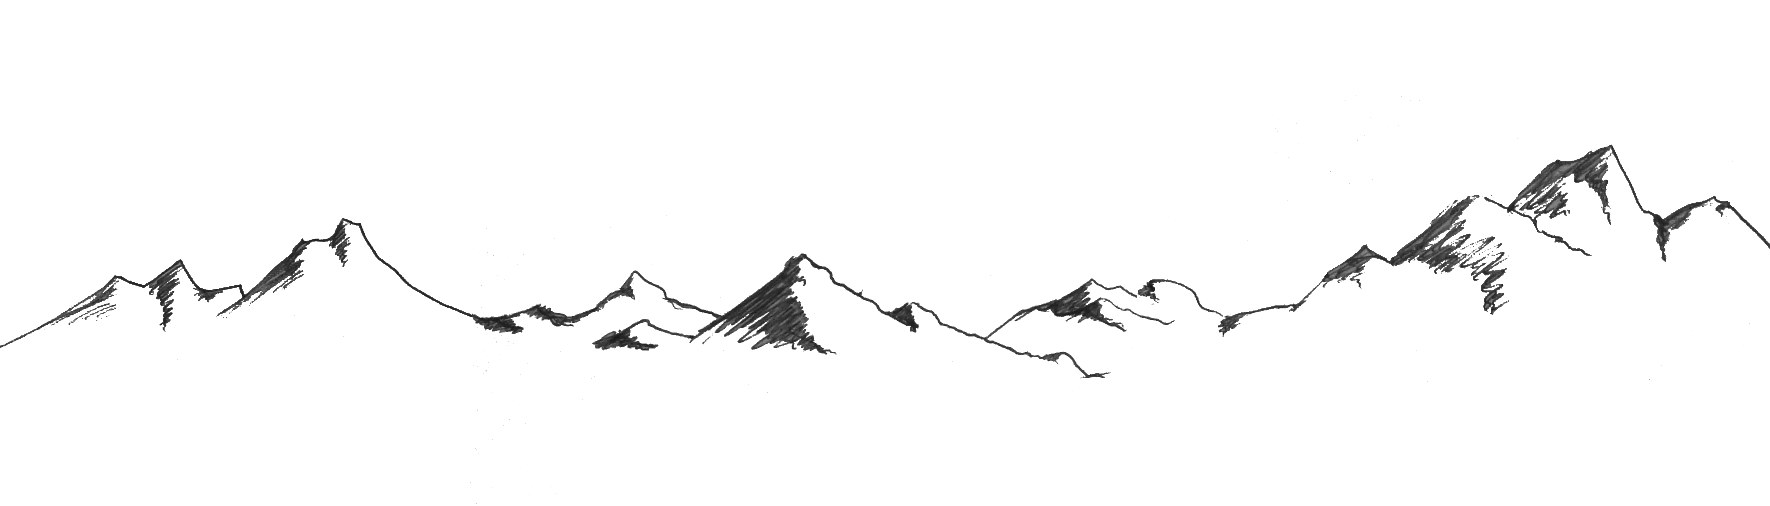 Avalanche drawing mountain. Transparent png pictures free